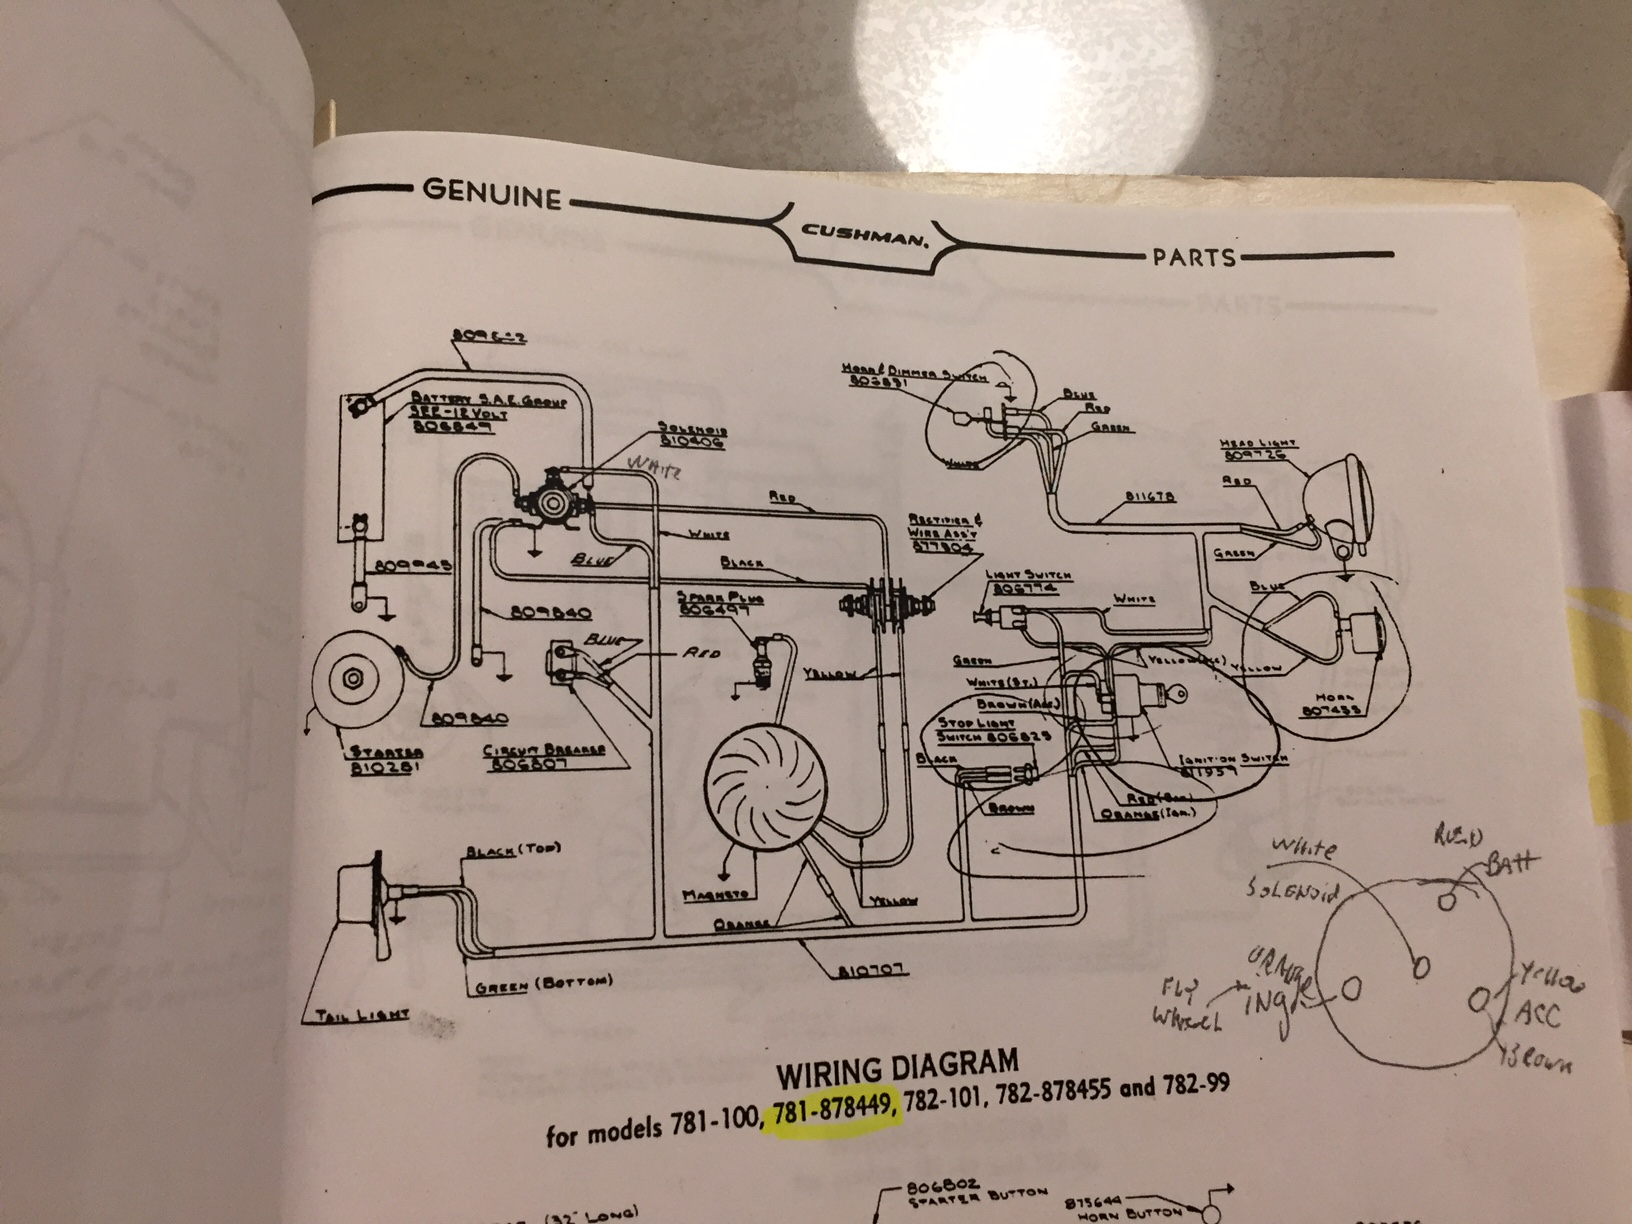 [DIAGRAM_4PO]  Cushman Wiring Diagrams - Onan Marquis 5000 Wiring Diagram for Wiring  Diagram Schematics | Cushman Hawk Wiring Diagram |  | Wiring Diagram Schematics